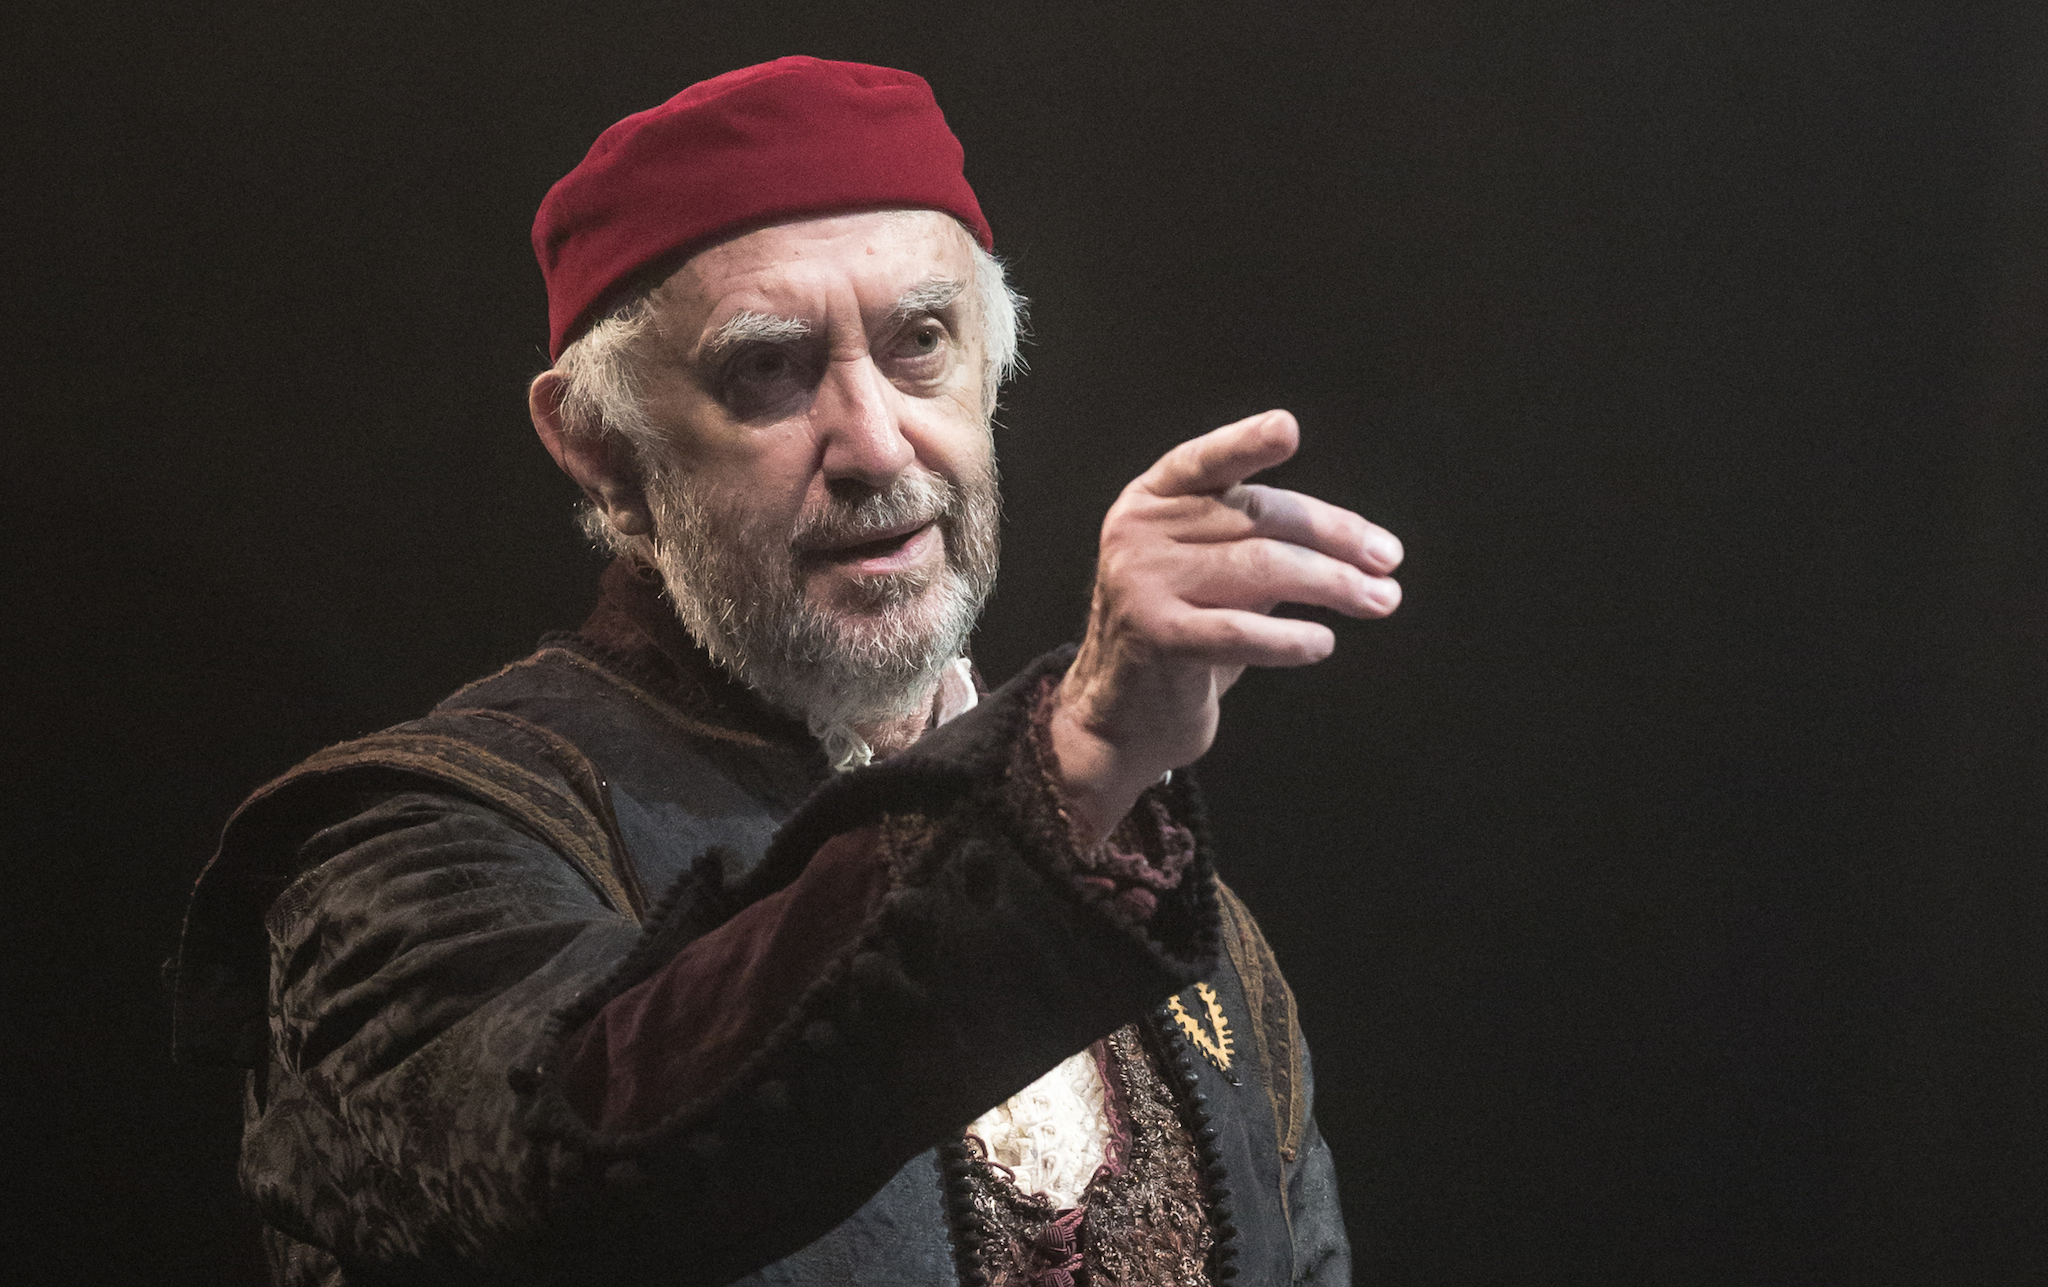 Game of Thrones' Jonathan Pryce does Shakespeare's Shylock in NYC